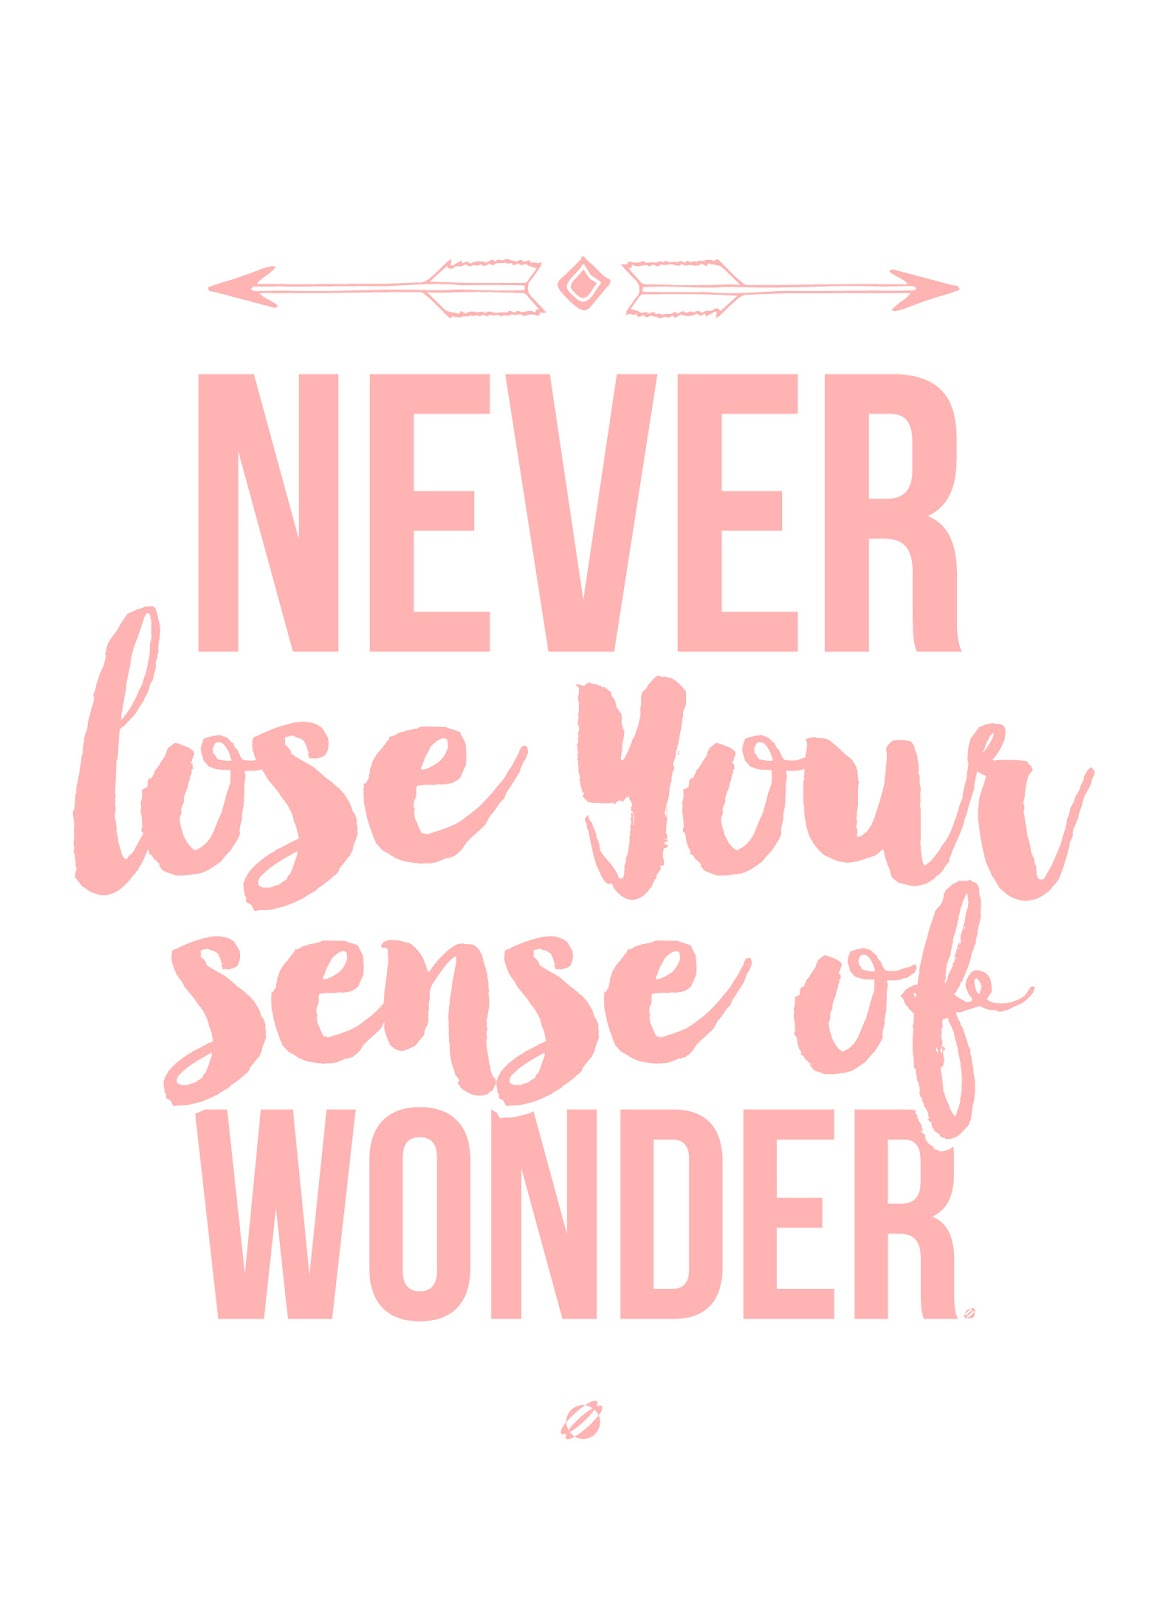 Never lose your sense of wonder by lostbumblebee